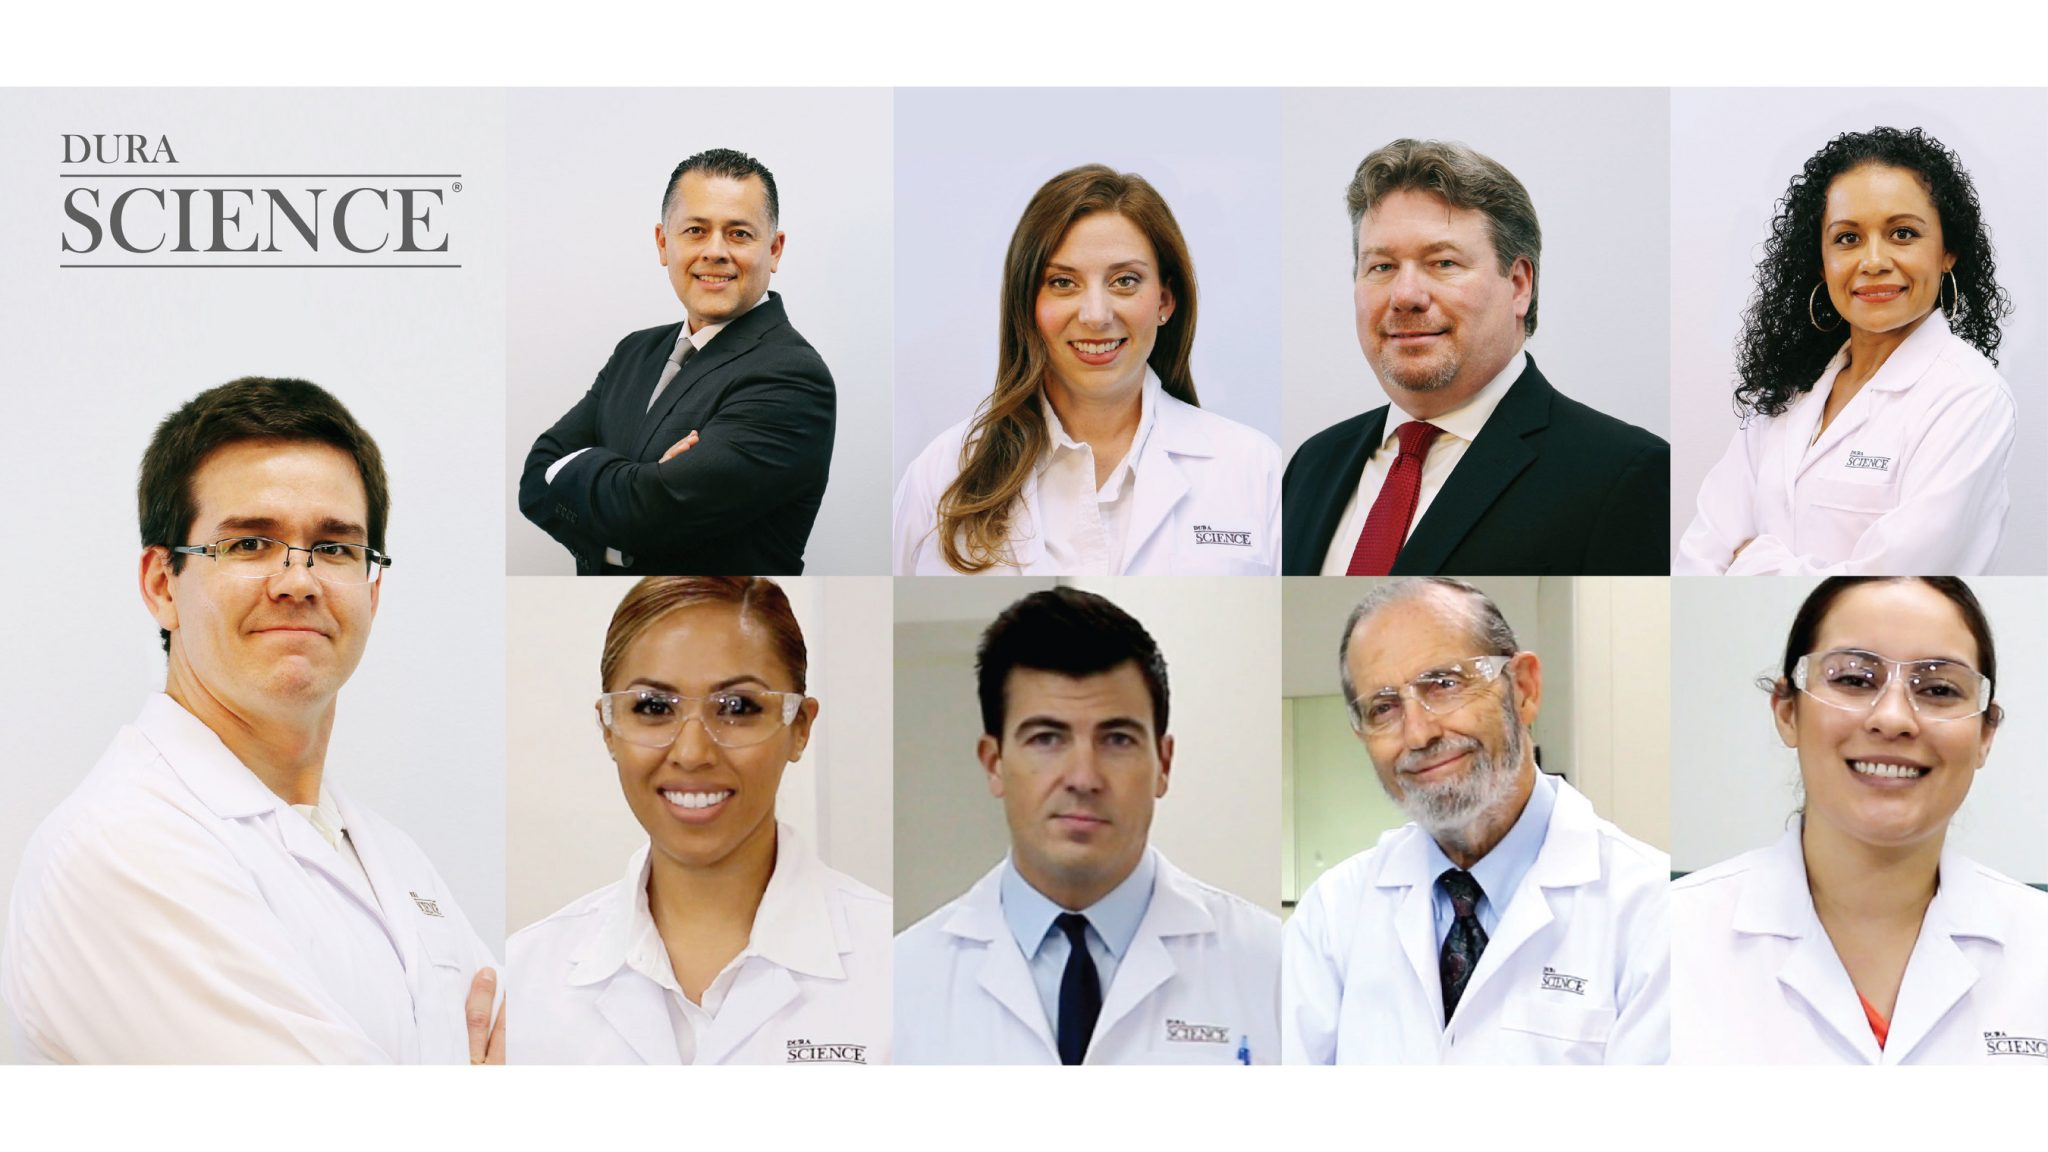 Photo: The team of world renowned experts at DuraScience Institute of USA | Source: Courtesy Photo